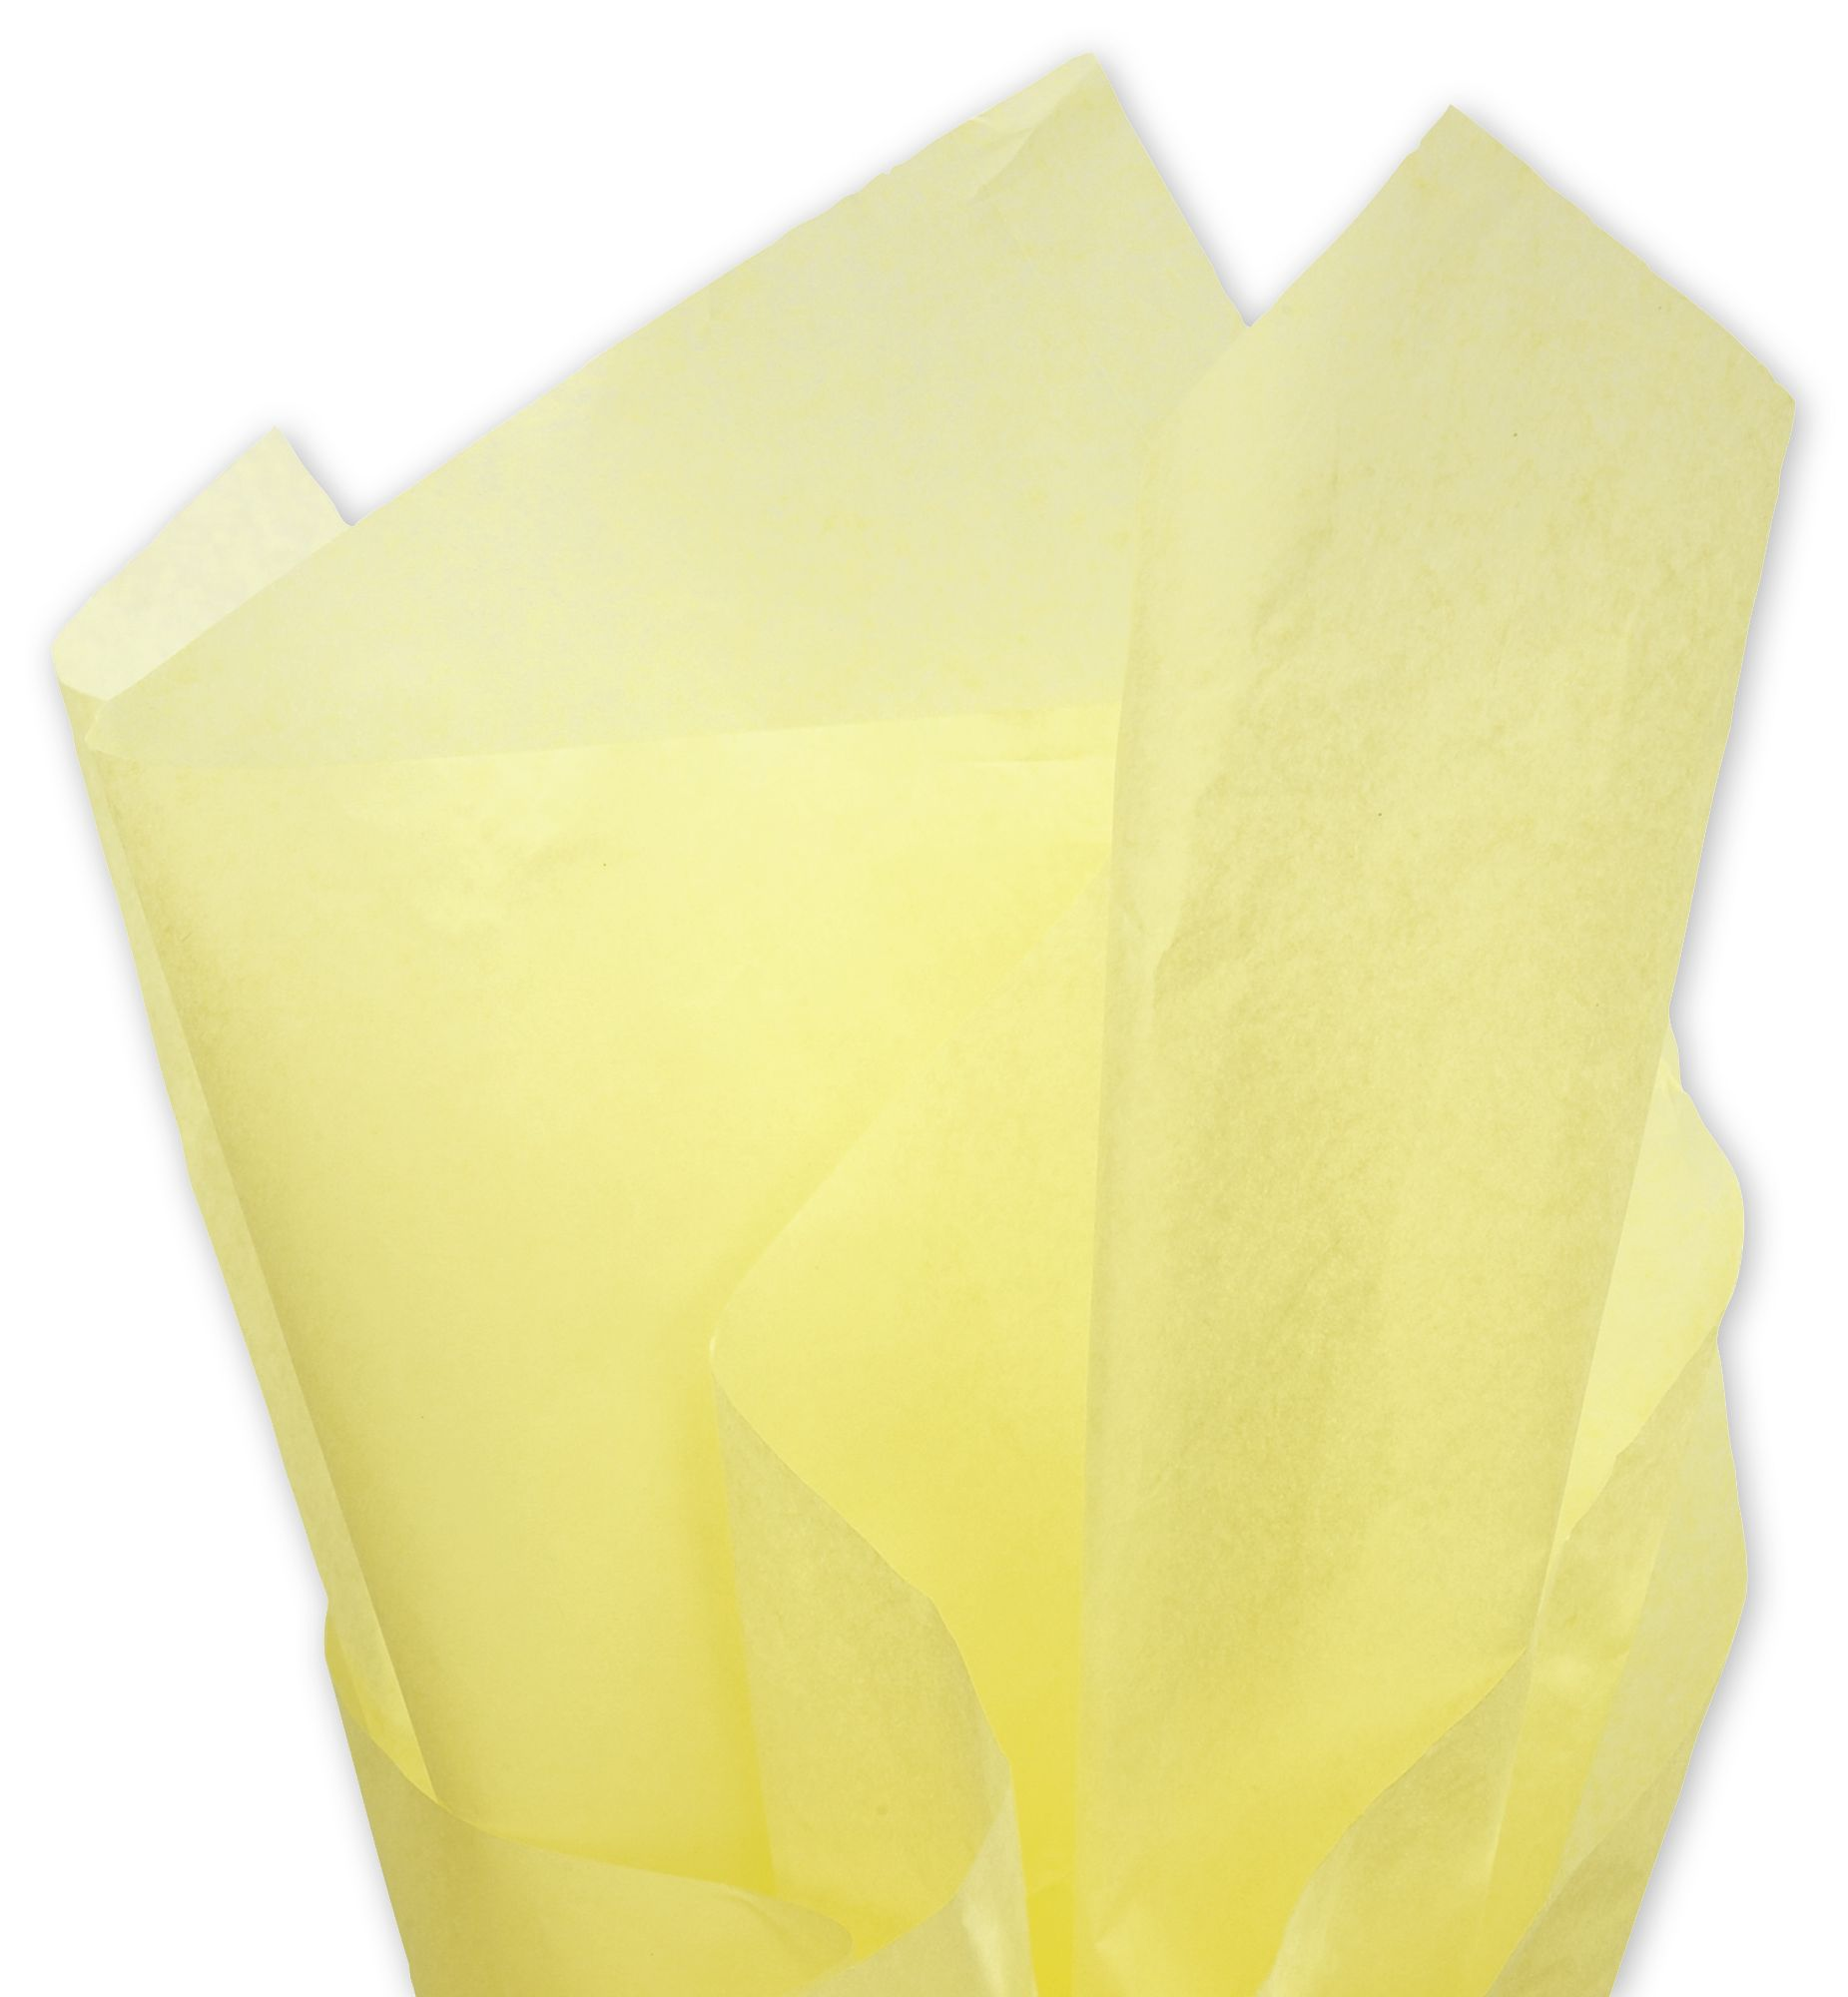 Dress up your gifts with this vibrant solid yellow tissue paper. Mix and match with colors or patterns for added style.